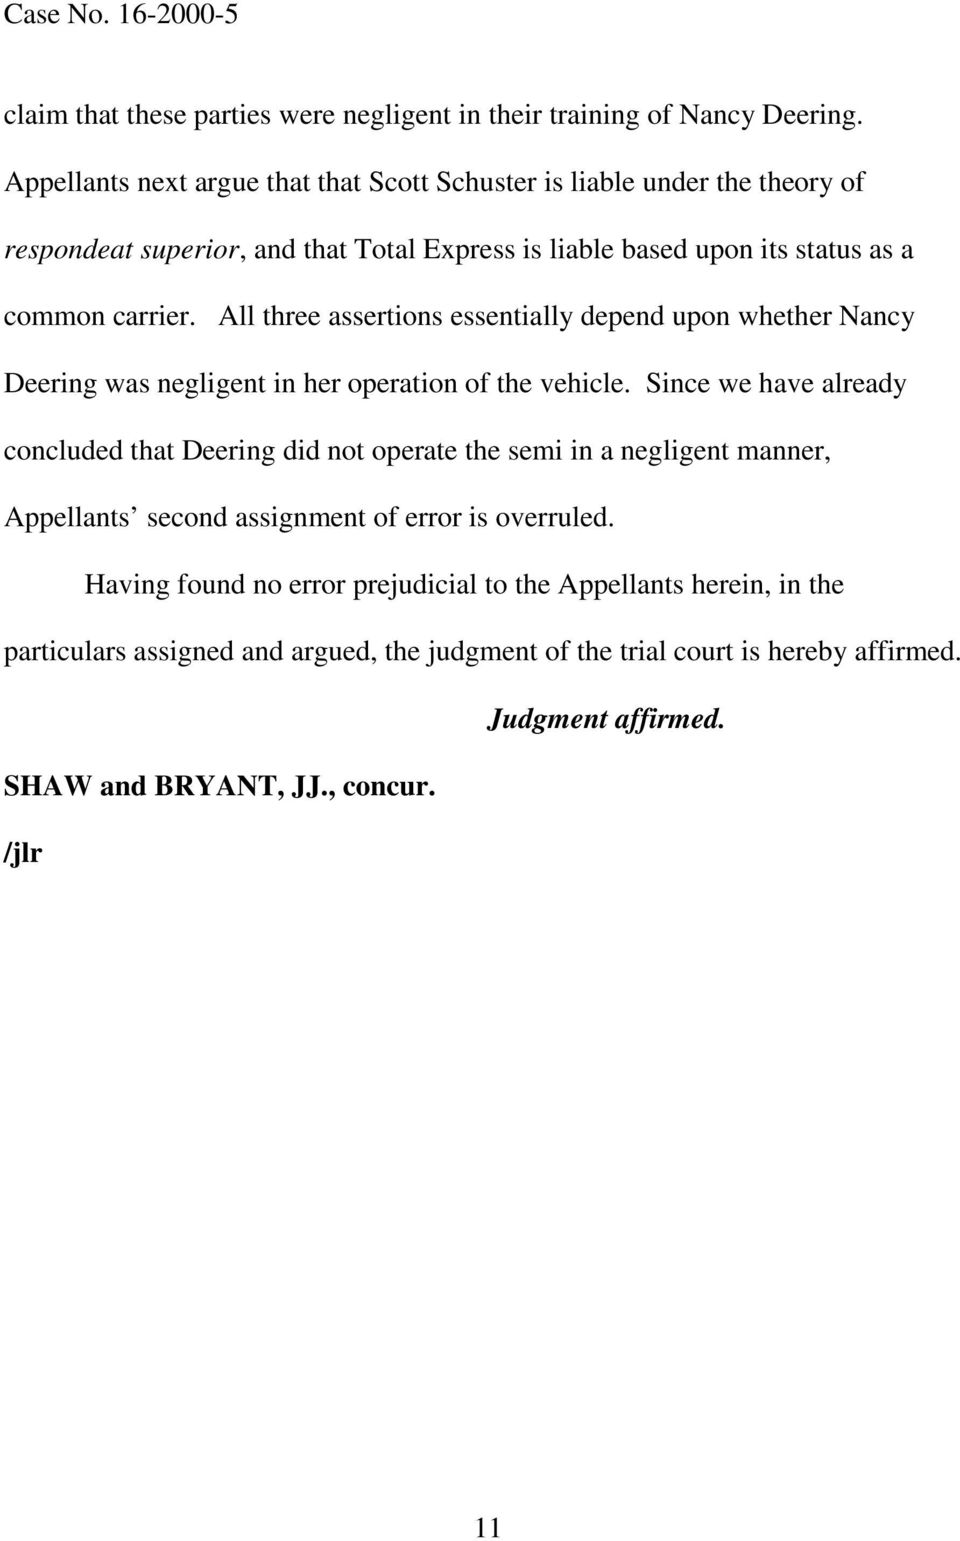 All three assertions essentially depend upon whether Nancy Deering was negligent in her operation of the vehicle.